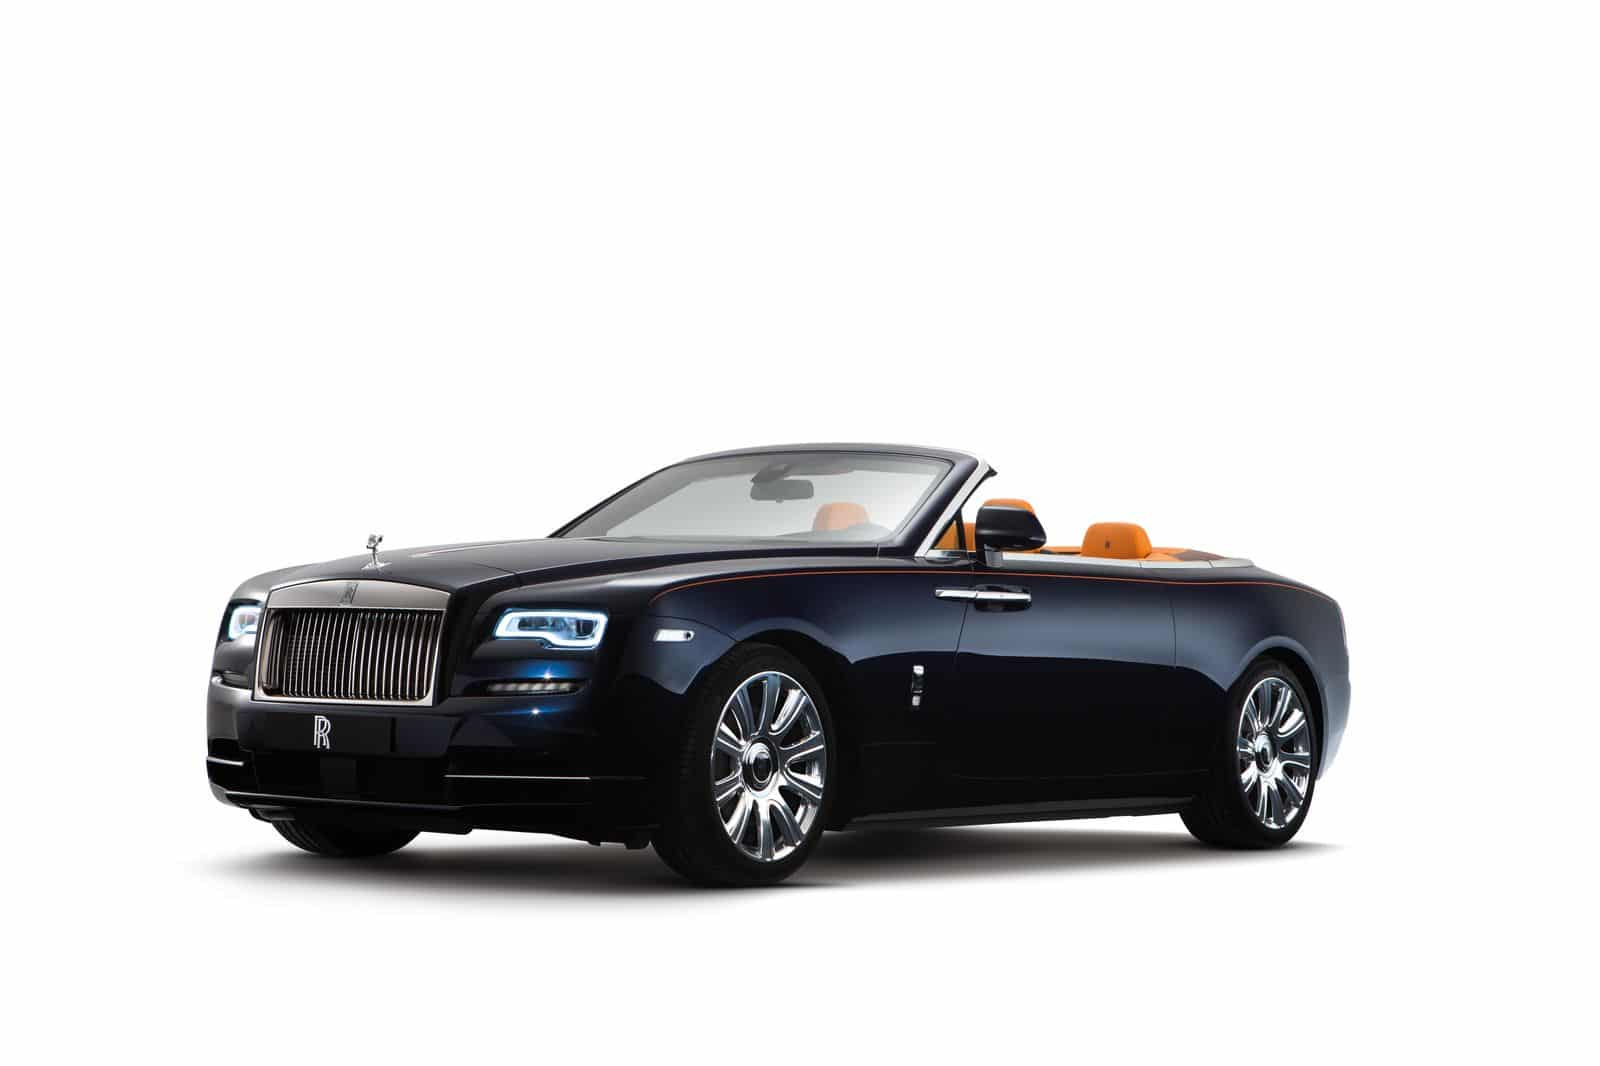 Rolls Royce Dawn : une autre dimension